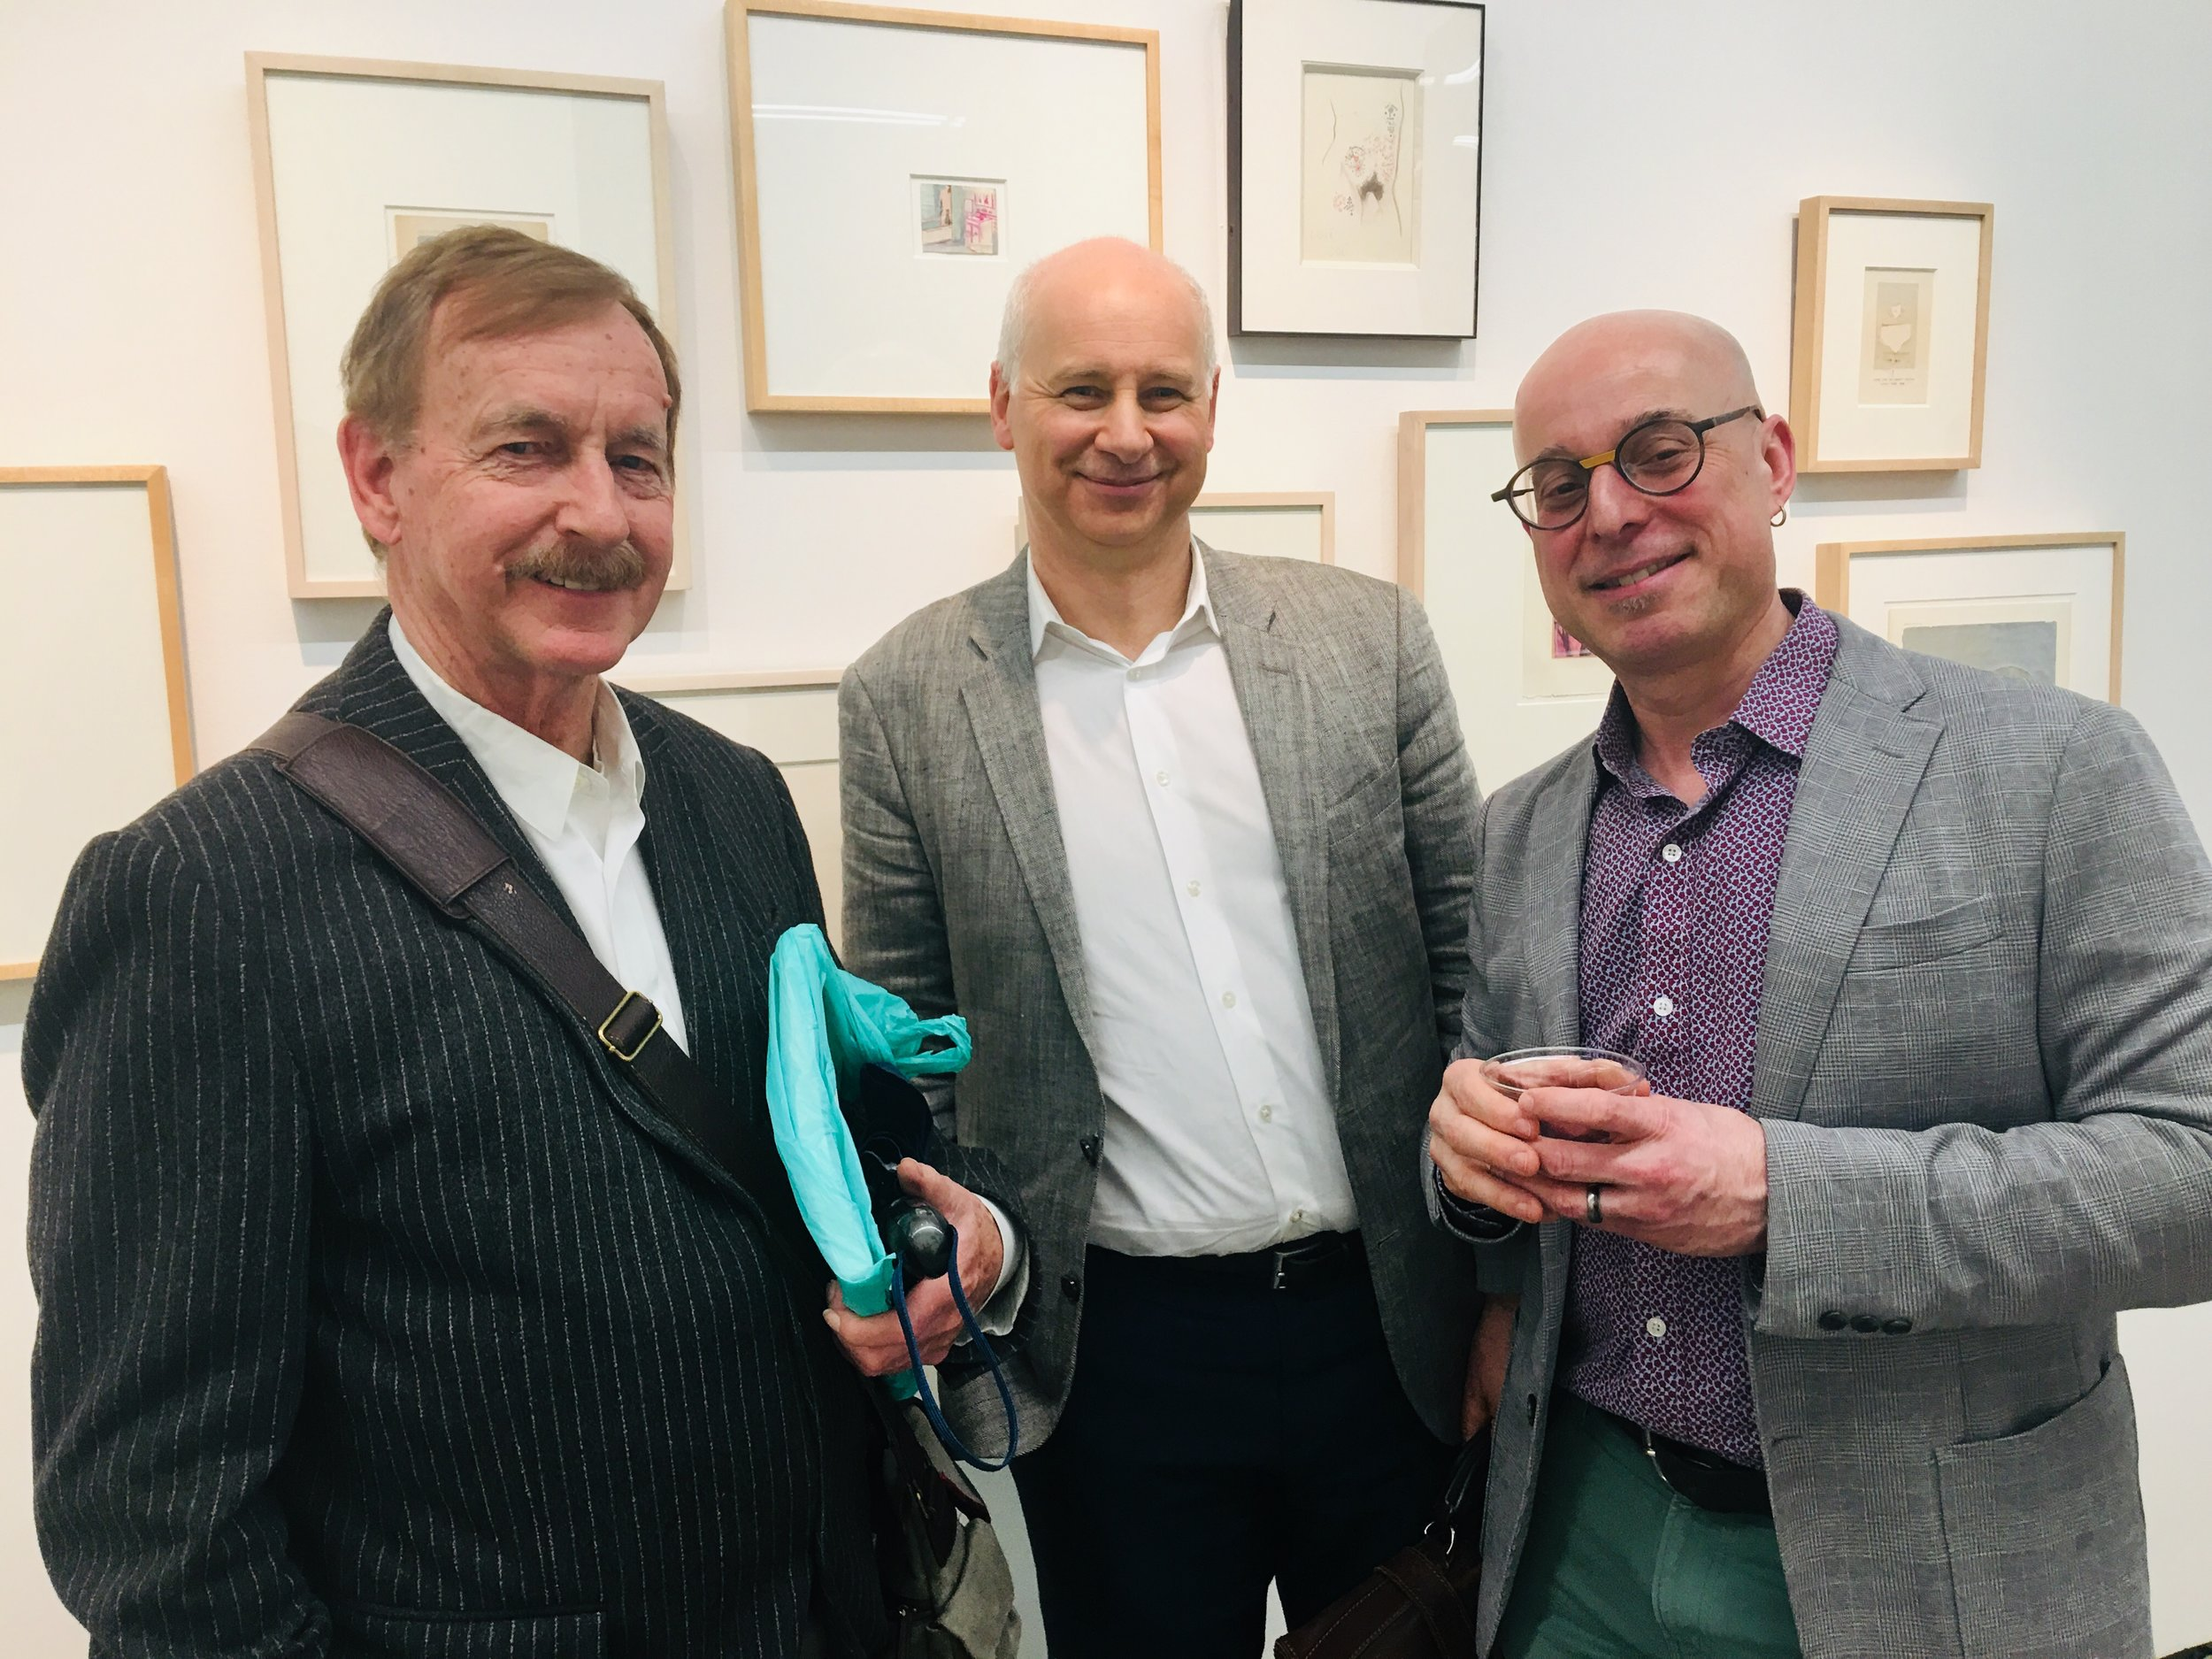 (from l to r) Trevor Winkfield and Mark Polizzotti, with jeffrey lependorf, at the Tibor de nagy Gallery (photo credit: star black)